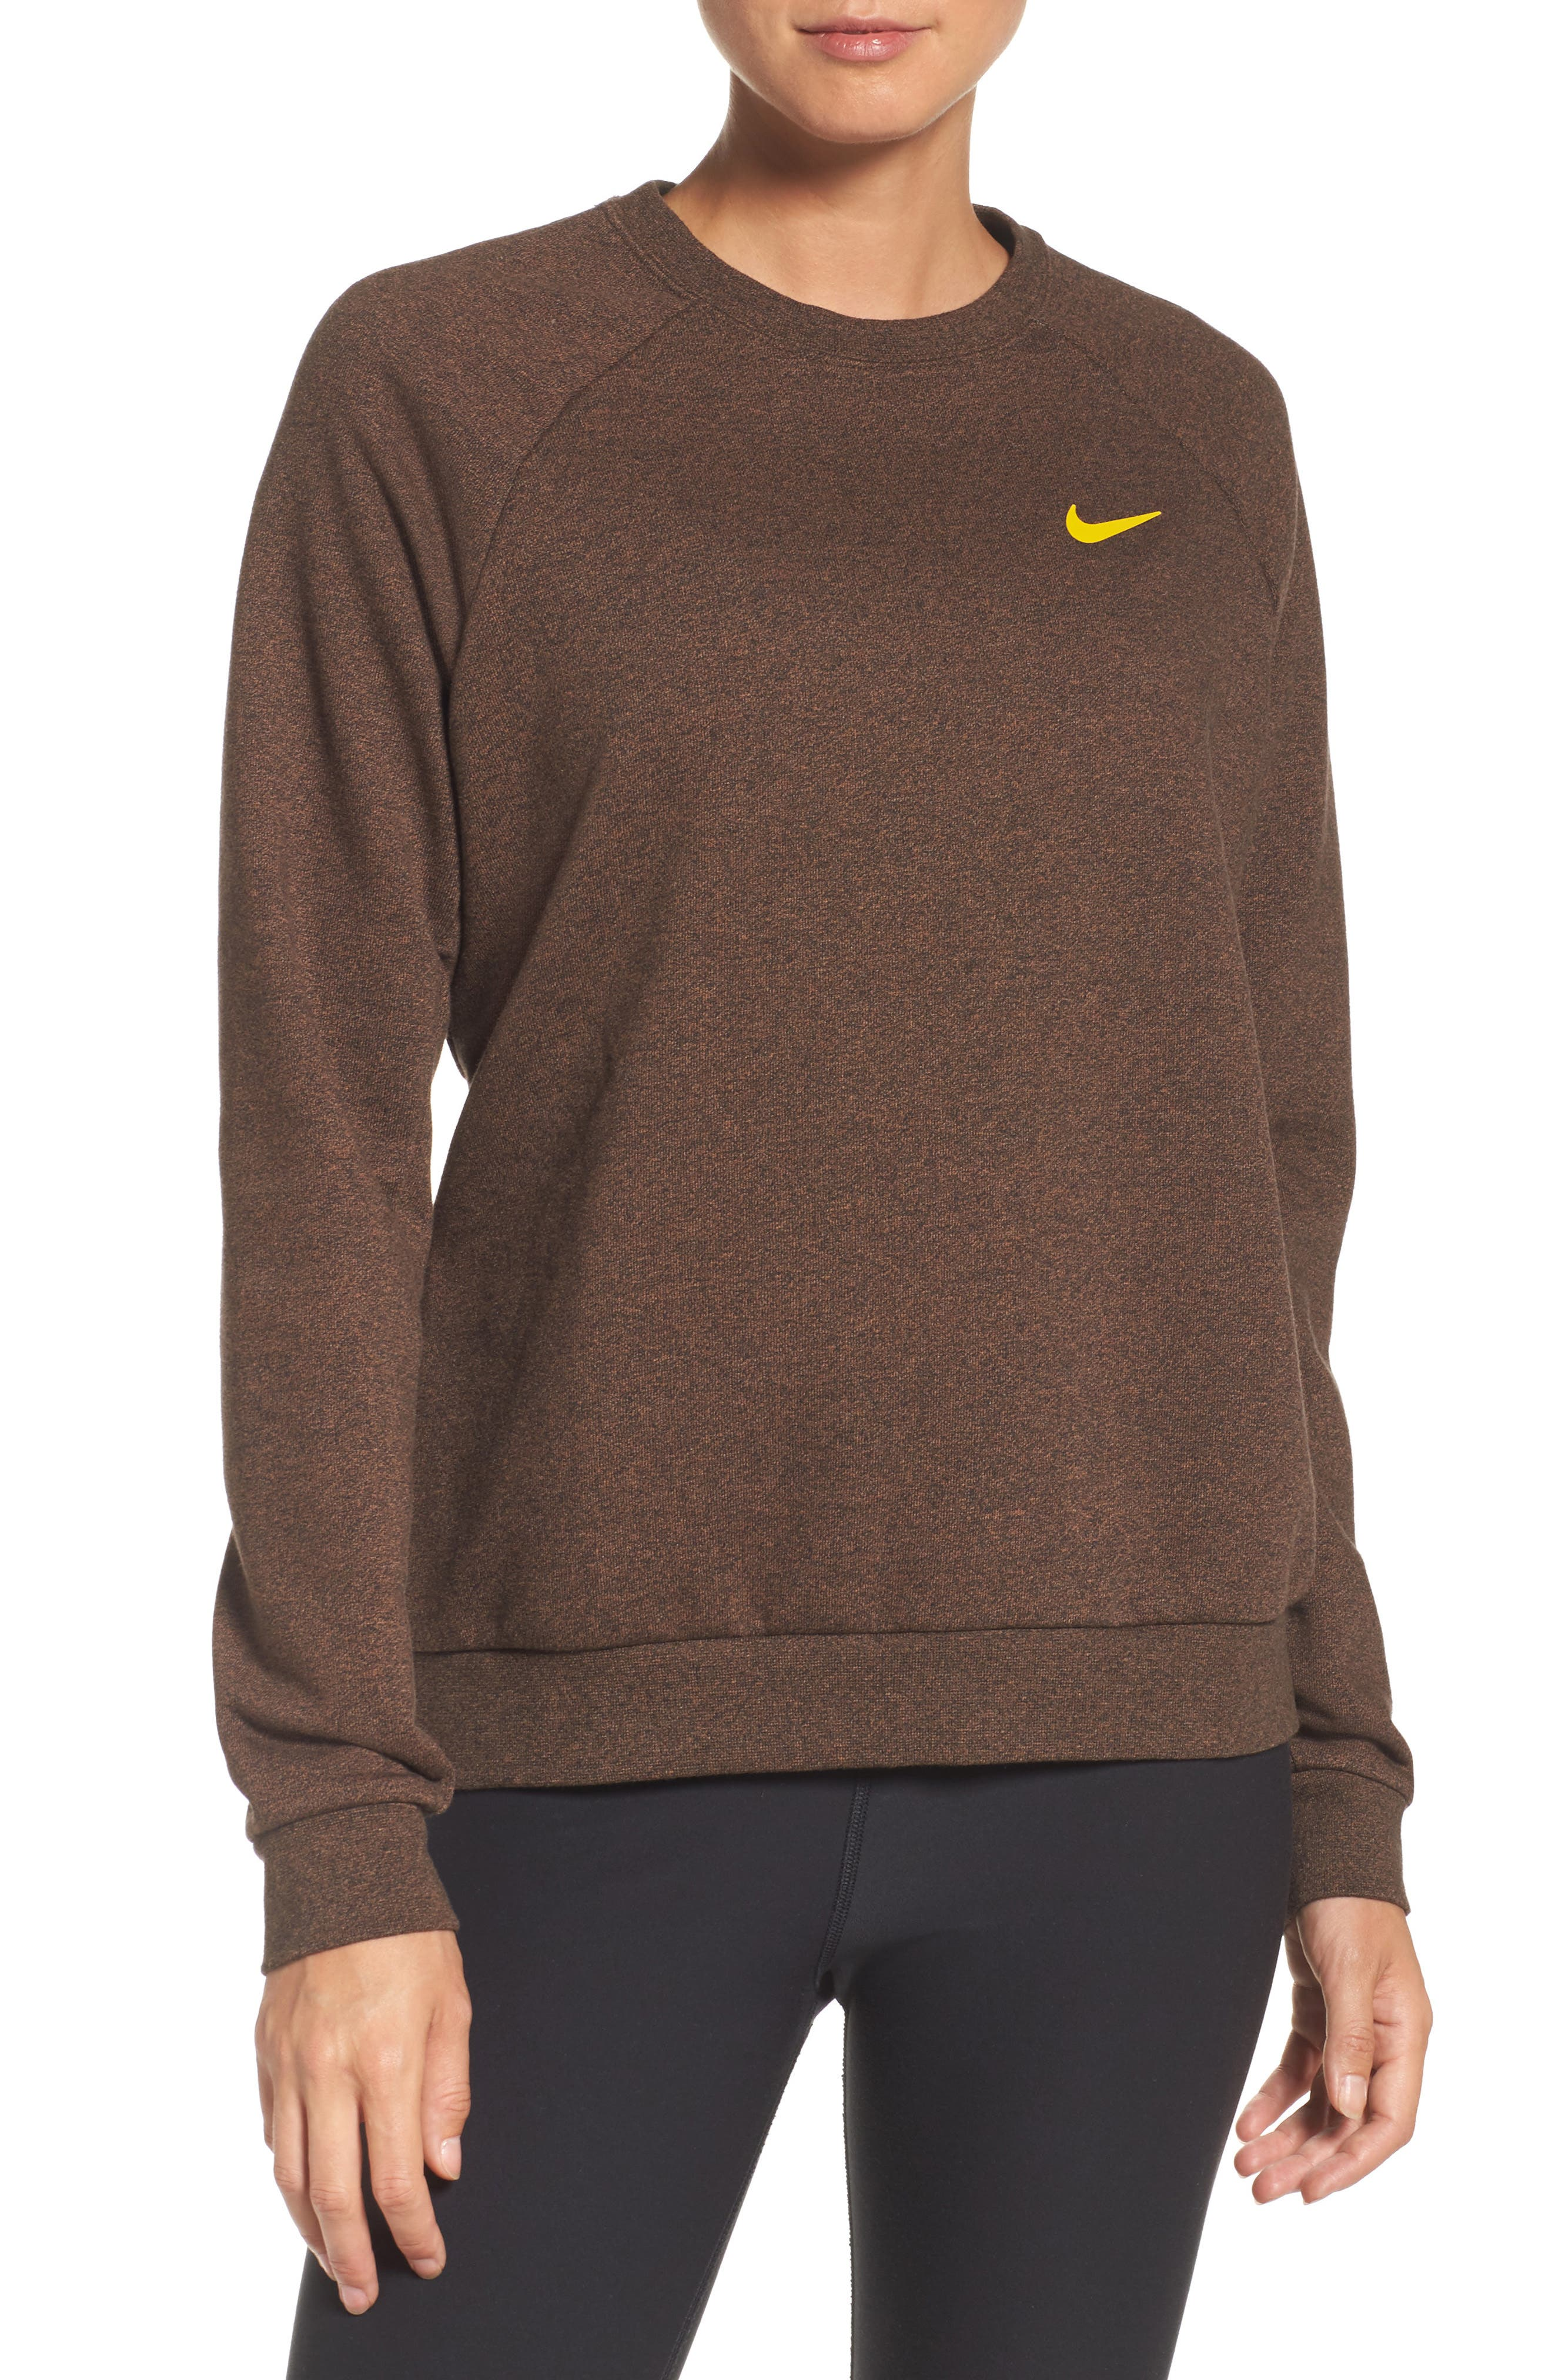 Nike Dry Open Back Training Top